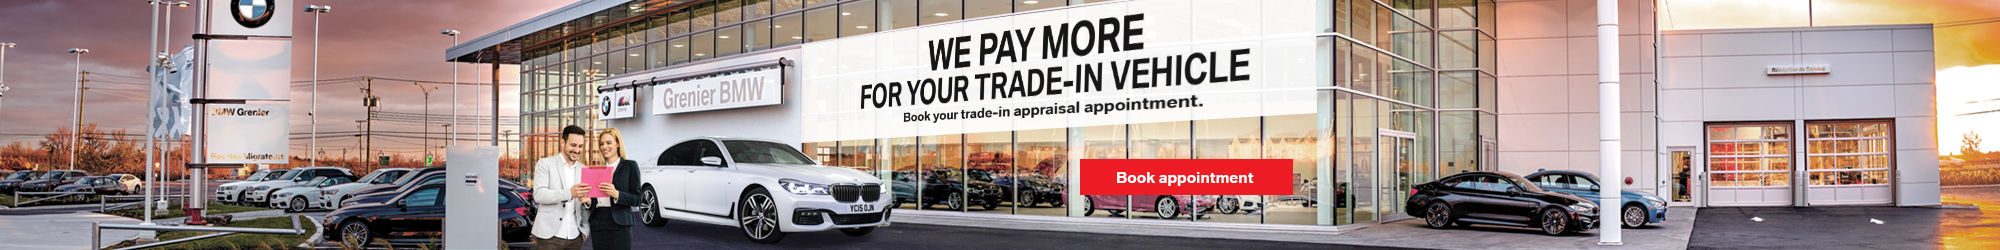 We pay more for your trade-in vehicle